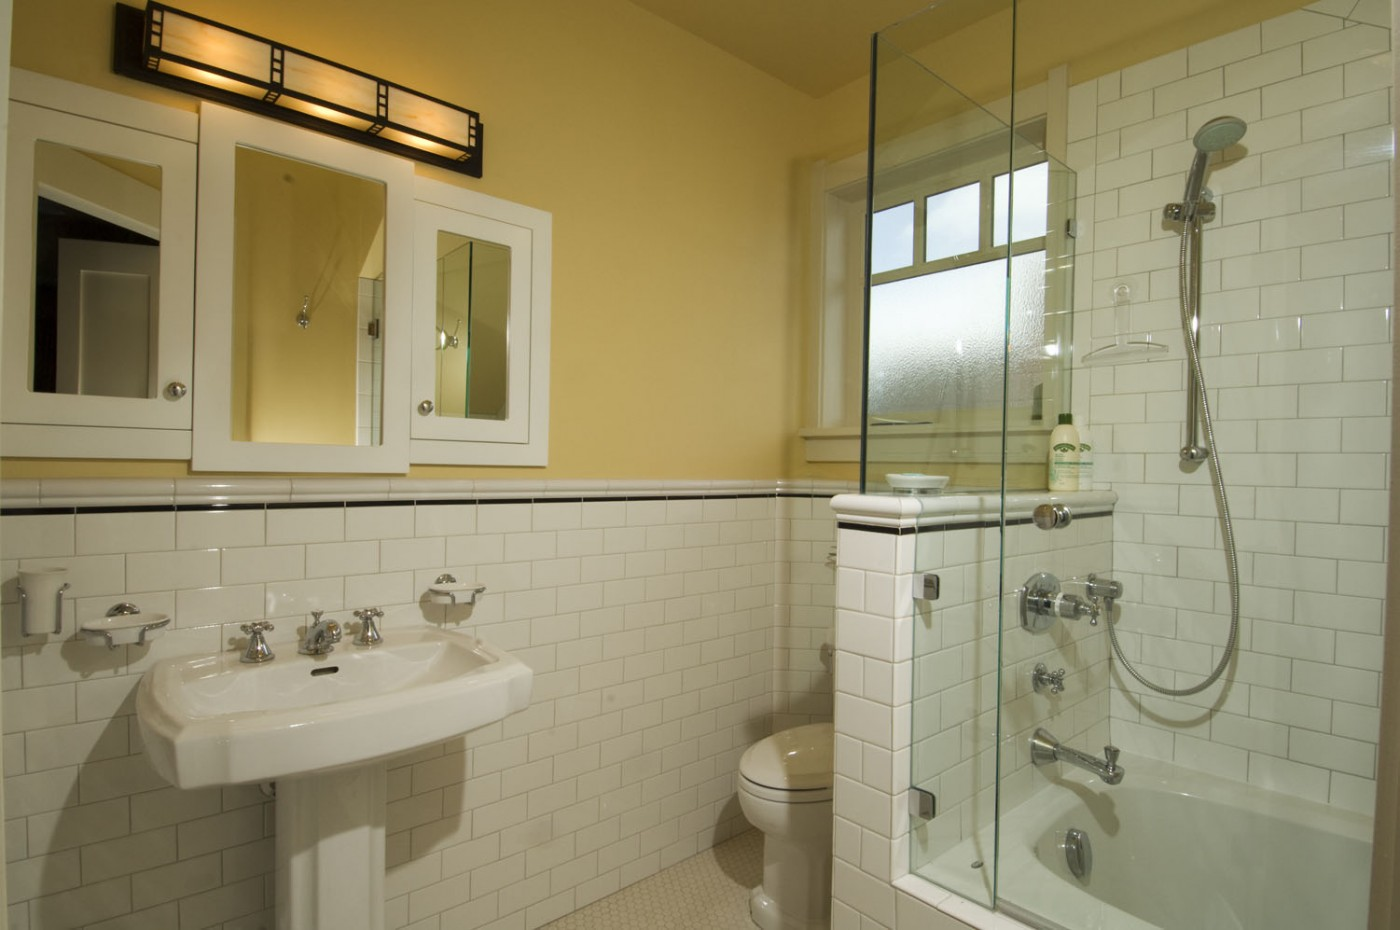 Bathroom Tile Ideas Craftsman Style : Bathrooms david coulson design